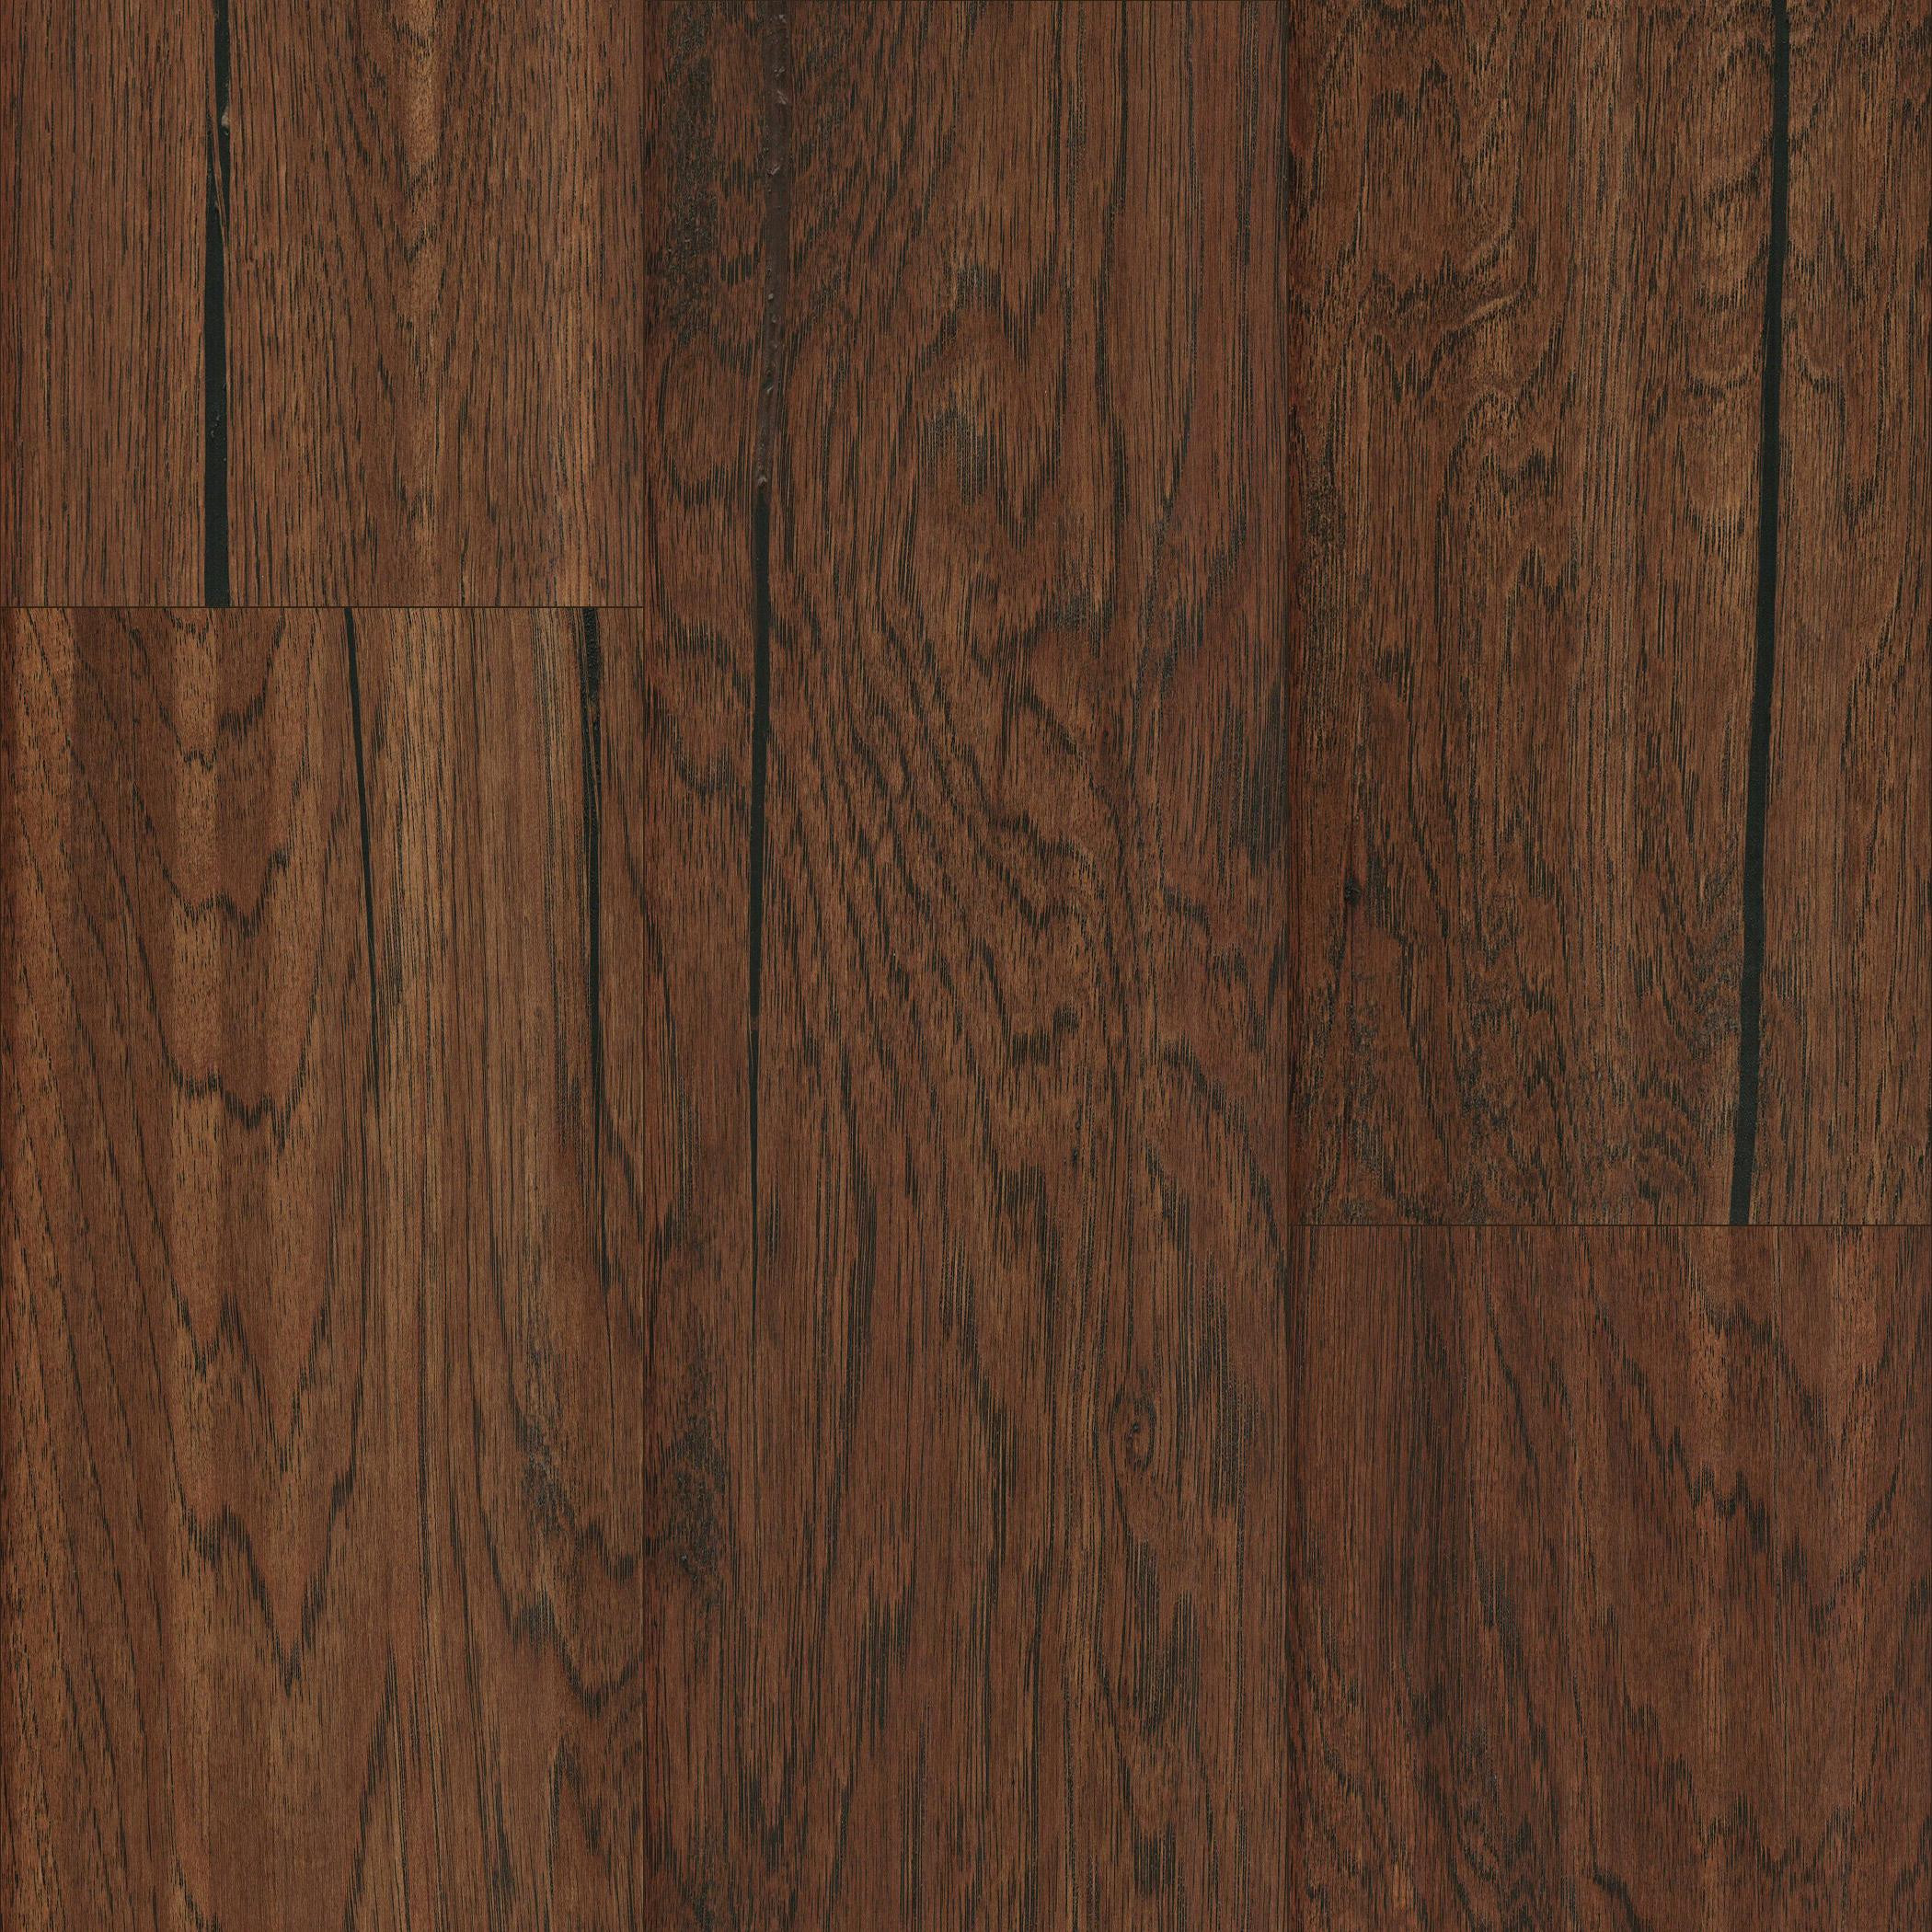 mannington engineered hardwood flooring reviews of mullican san marco hickory provincial 7 sculpted engineered inside mullican san marco hickory provincial 7 sculpted engineered hardwood flooring